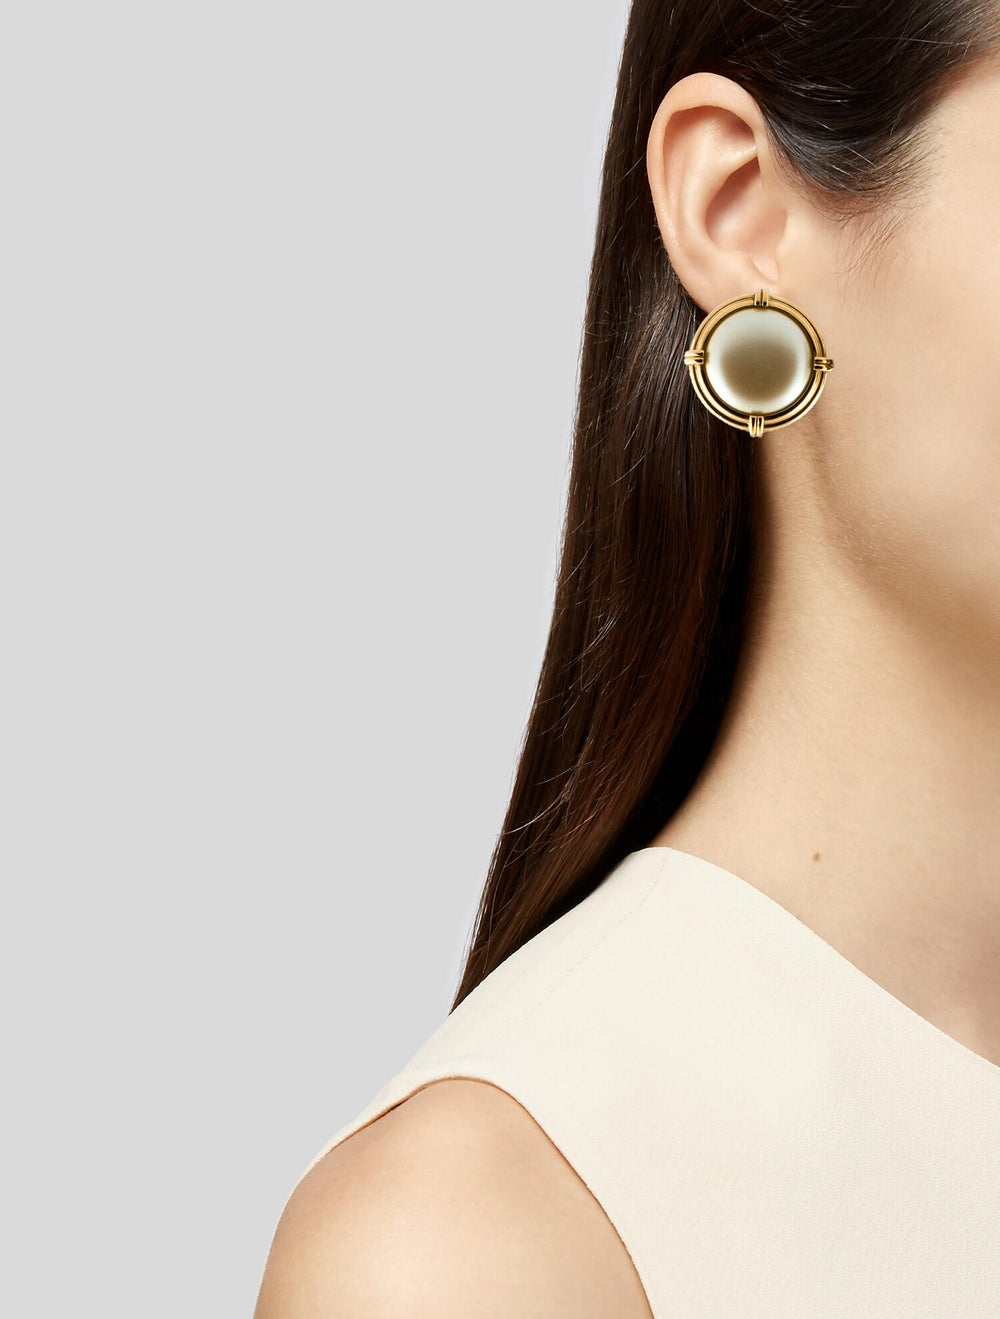 Yves Saint Laurent Faux Pearl Earclips Gold - image 2